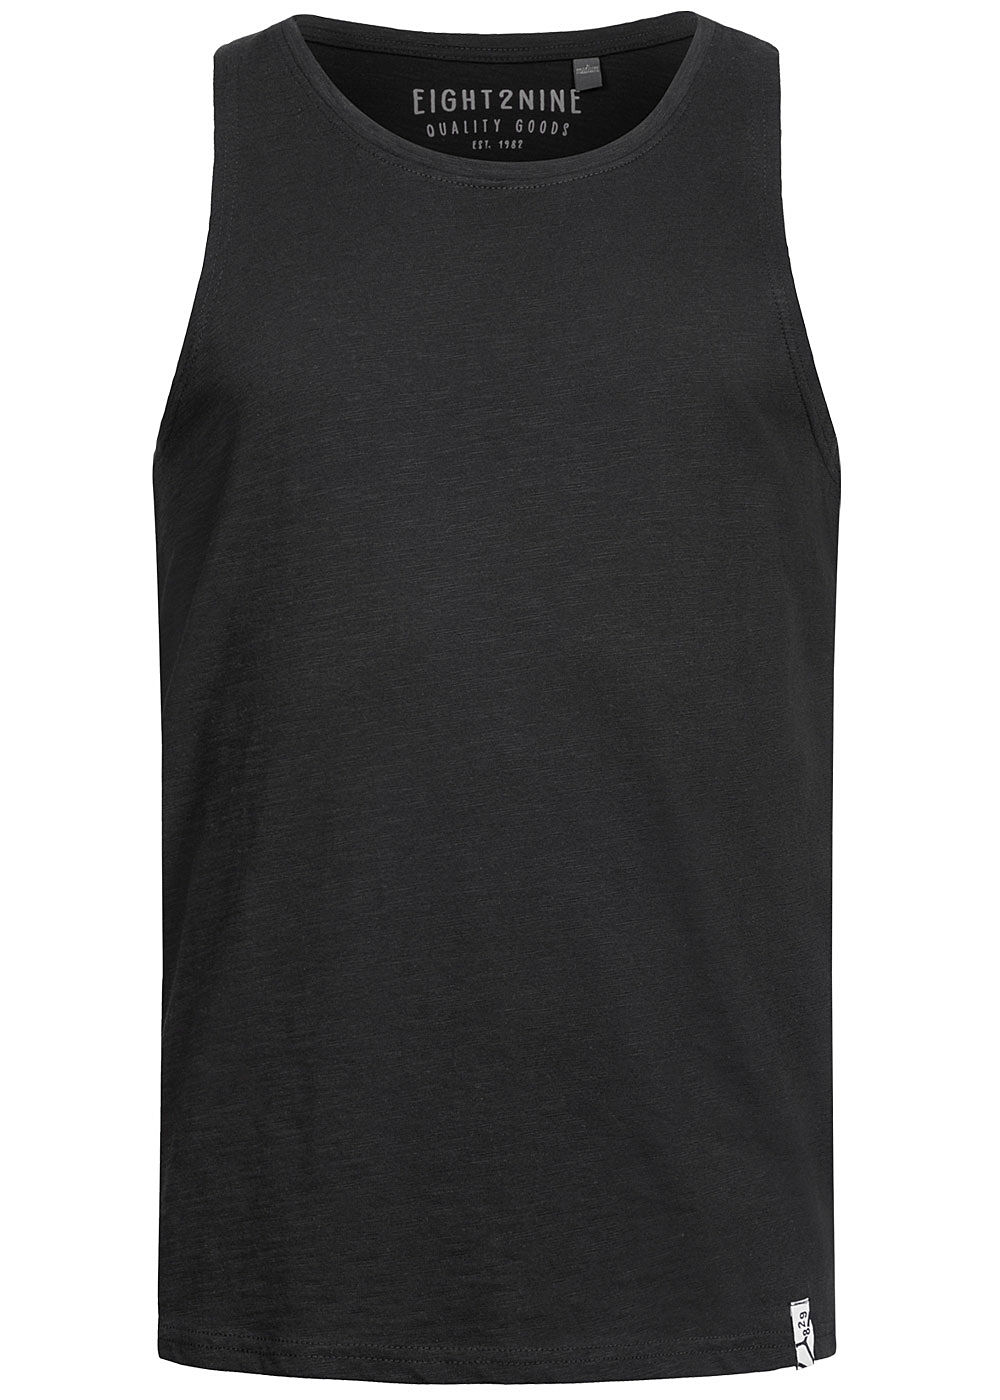 Eight2Nine Herren Tank Top schwarz - Art.-Nr.: 20031332